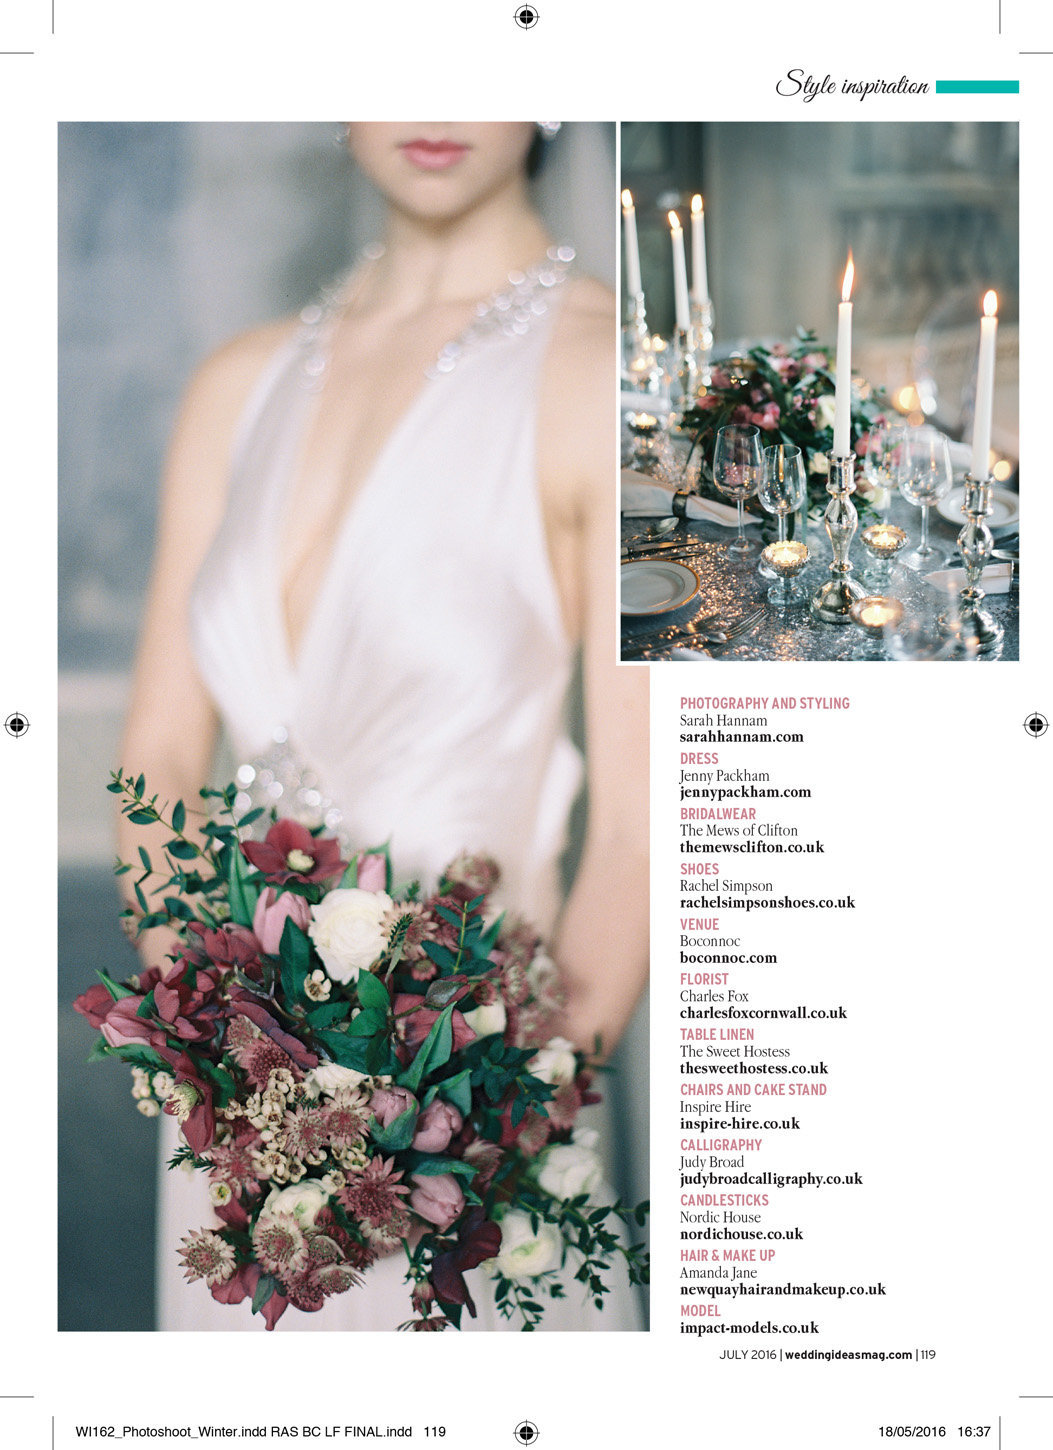 wedding ideas magazine boconnoc cornwall winter wedding